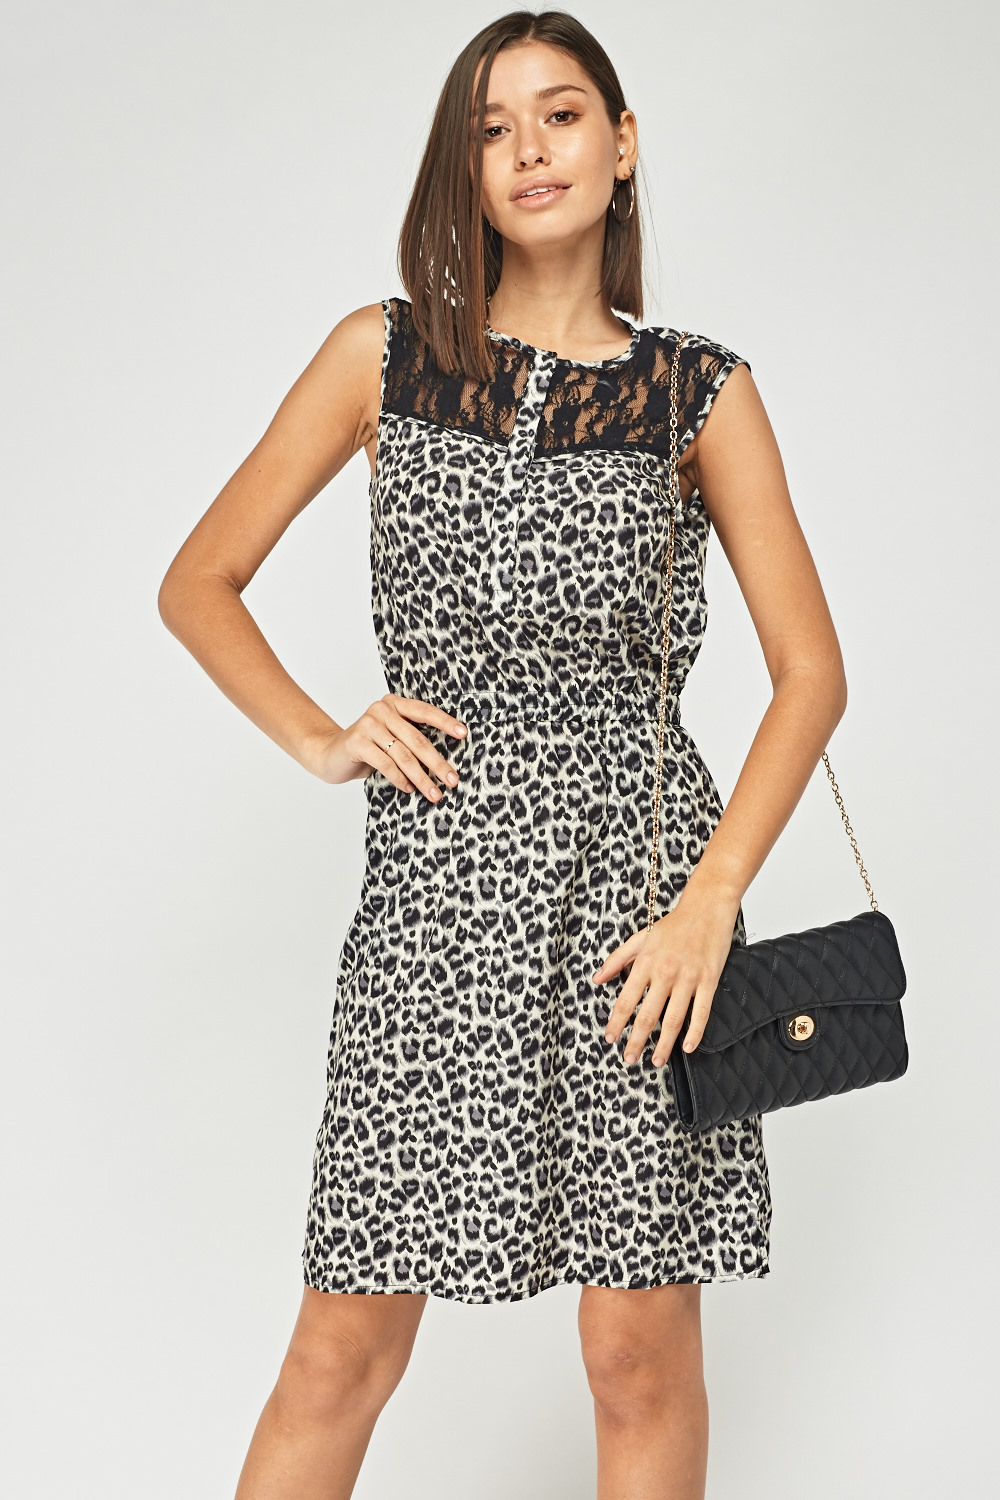 d890f5d1531d Lace Insert Leopard Print Dress - Just £5